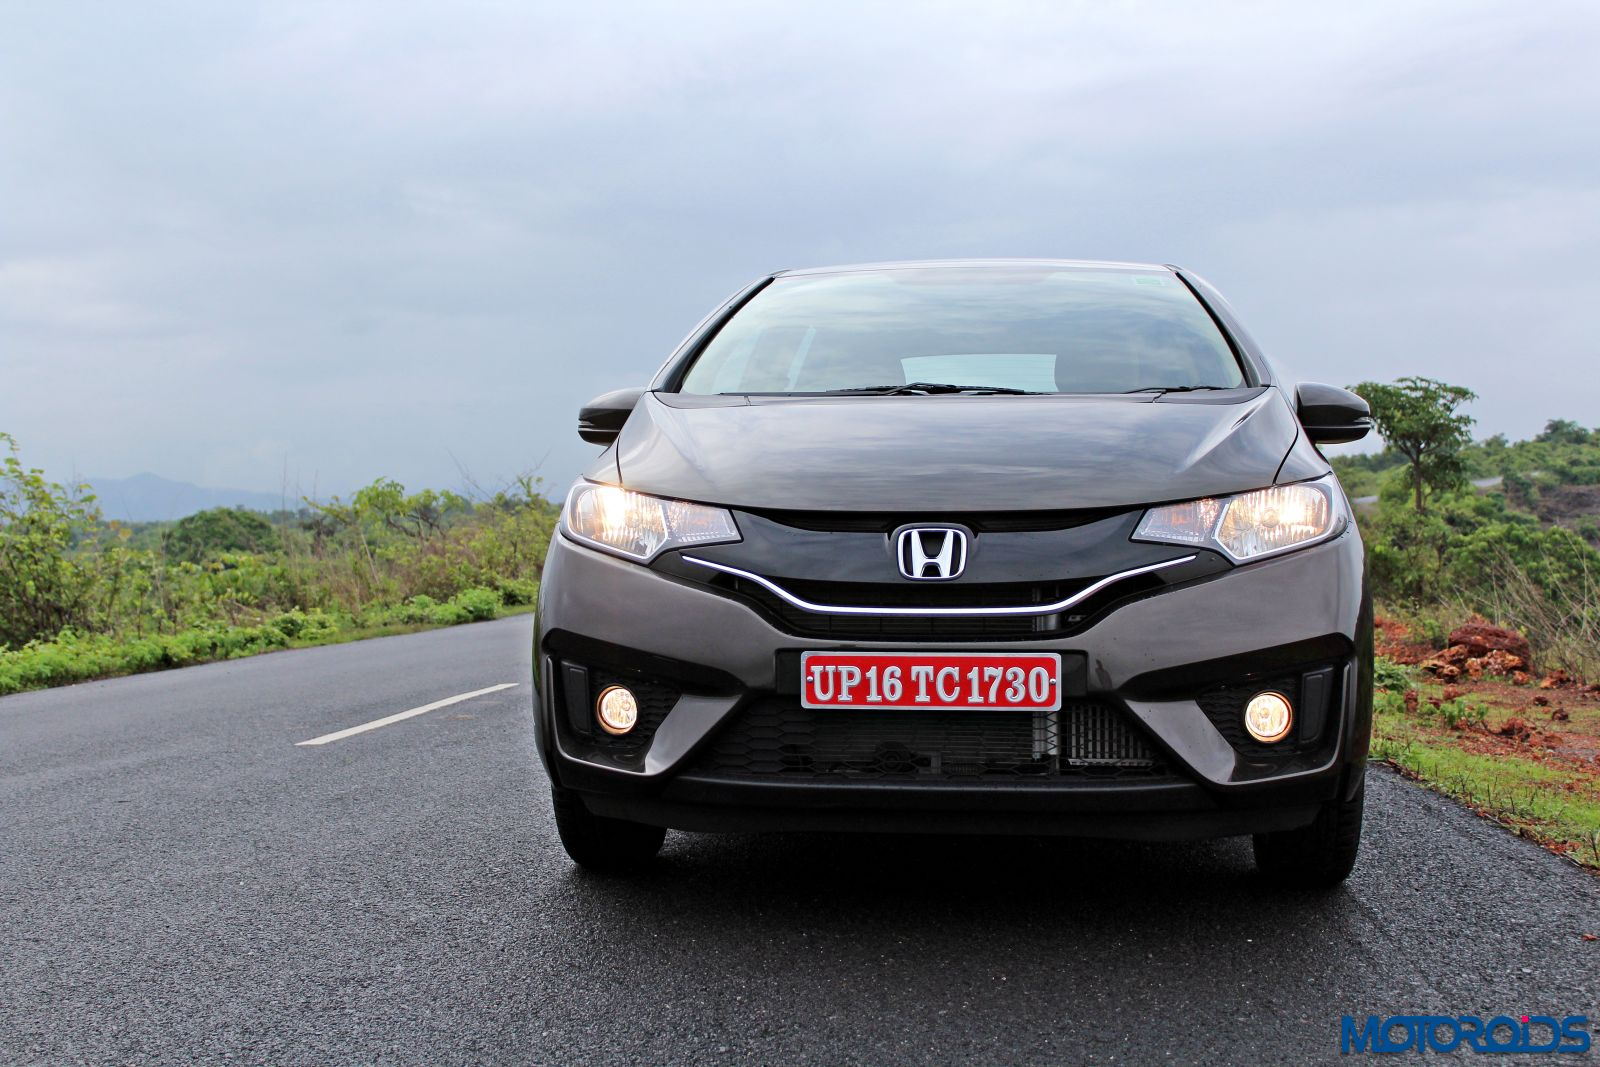 New 2015 Honda Jazz petrol / diesel India review : Canny ...